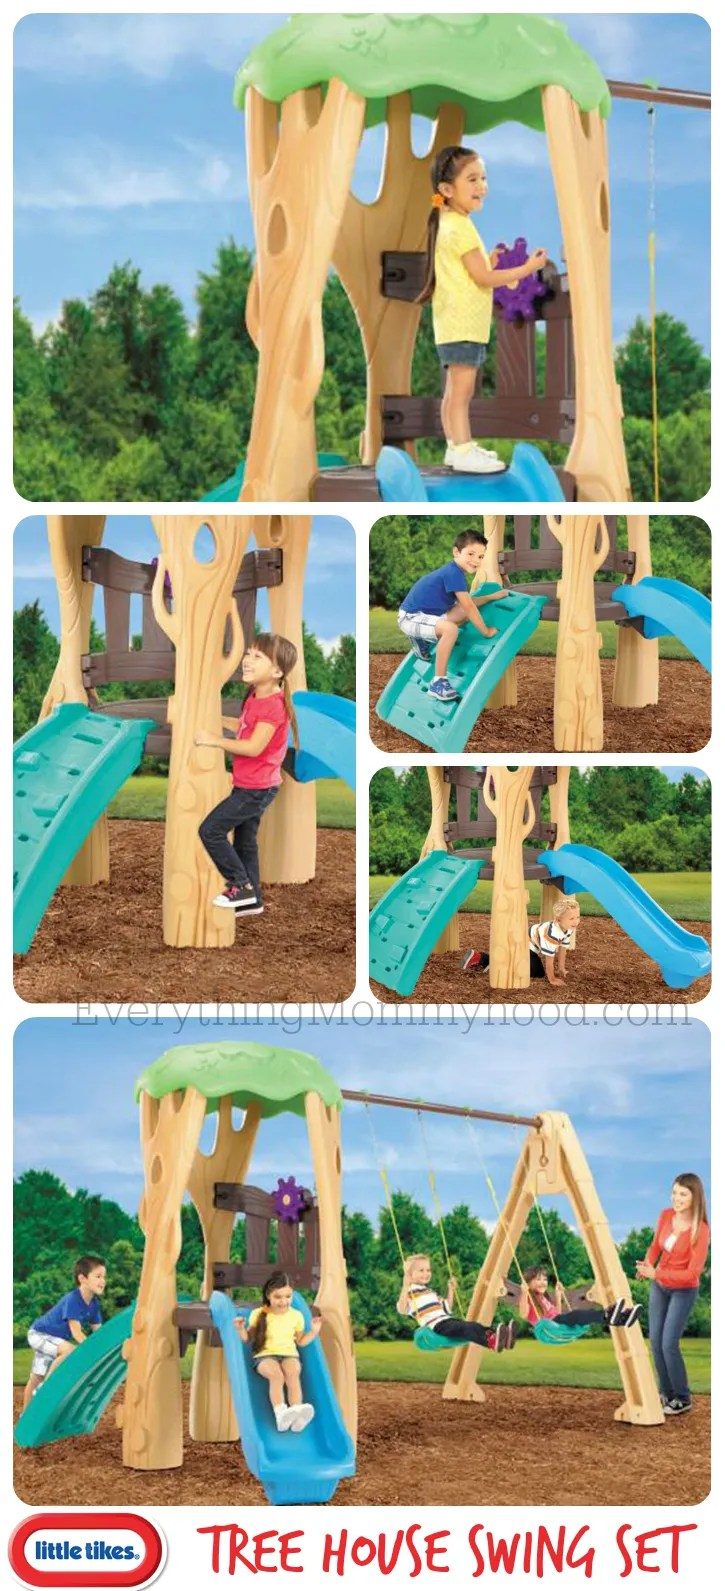 Little Tikes TreeHouse Collage